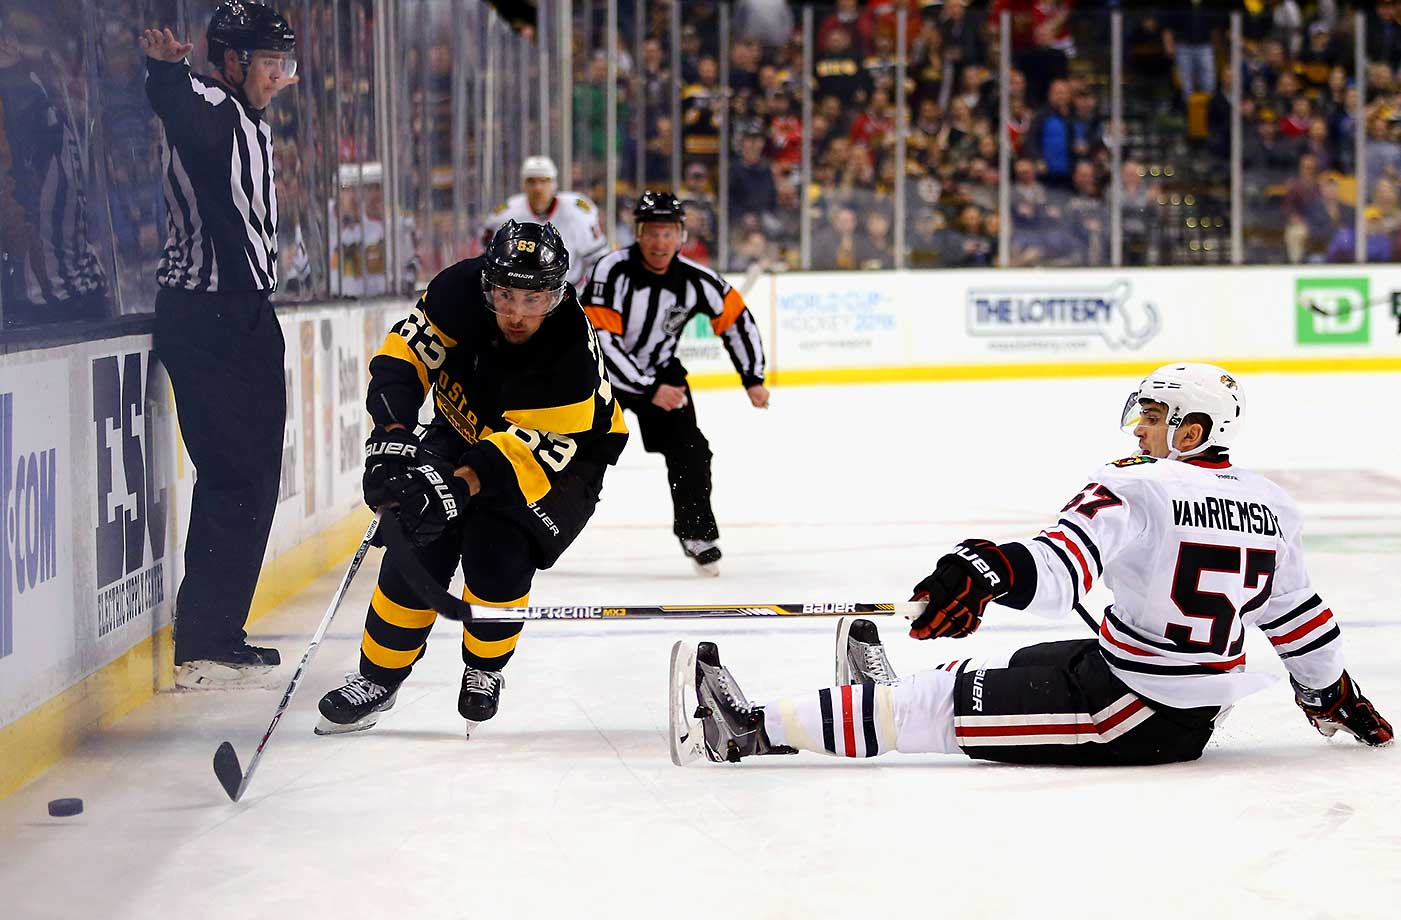 Trevor van Riemsdyk of Chicago is called for tripping against Brad Marchand of Boston.